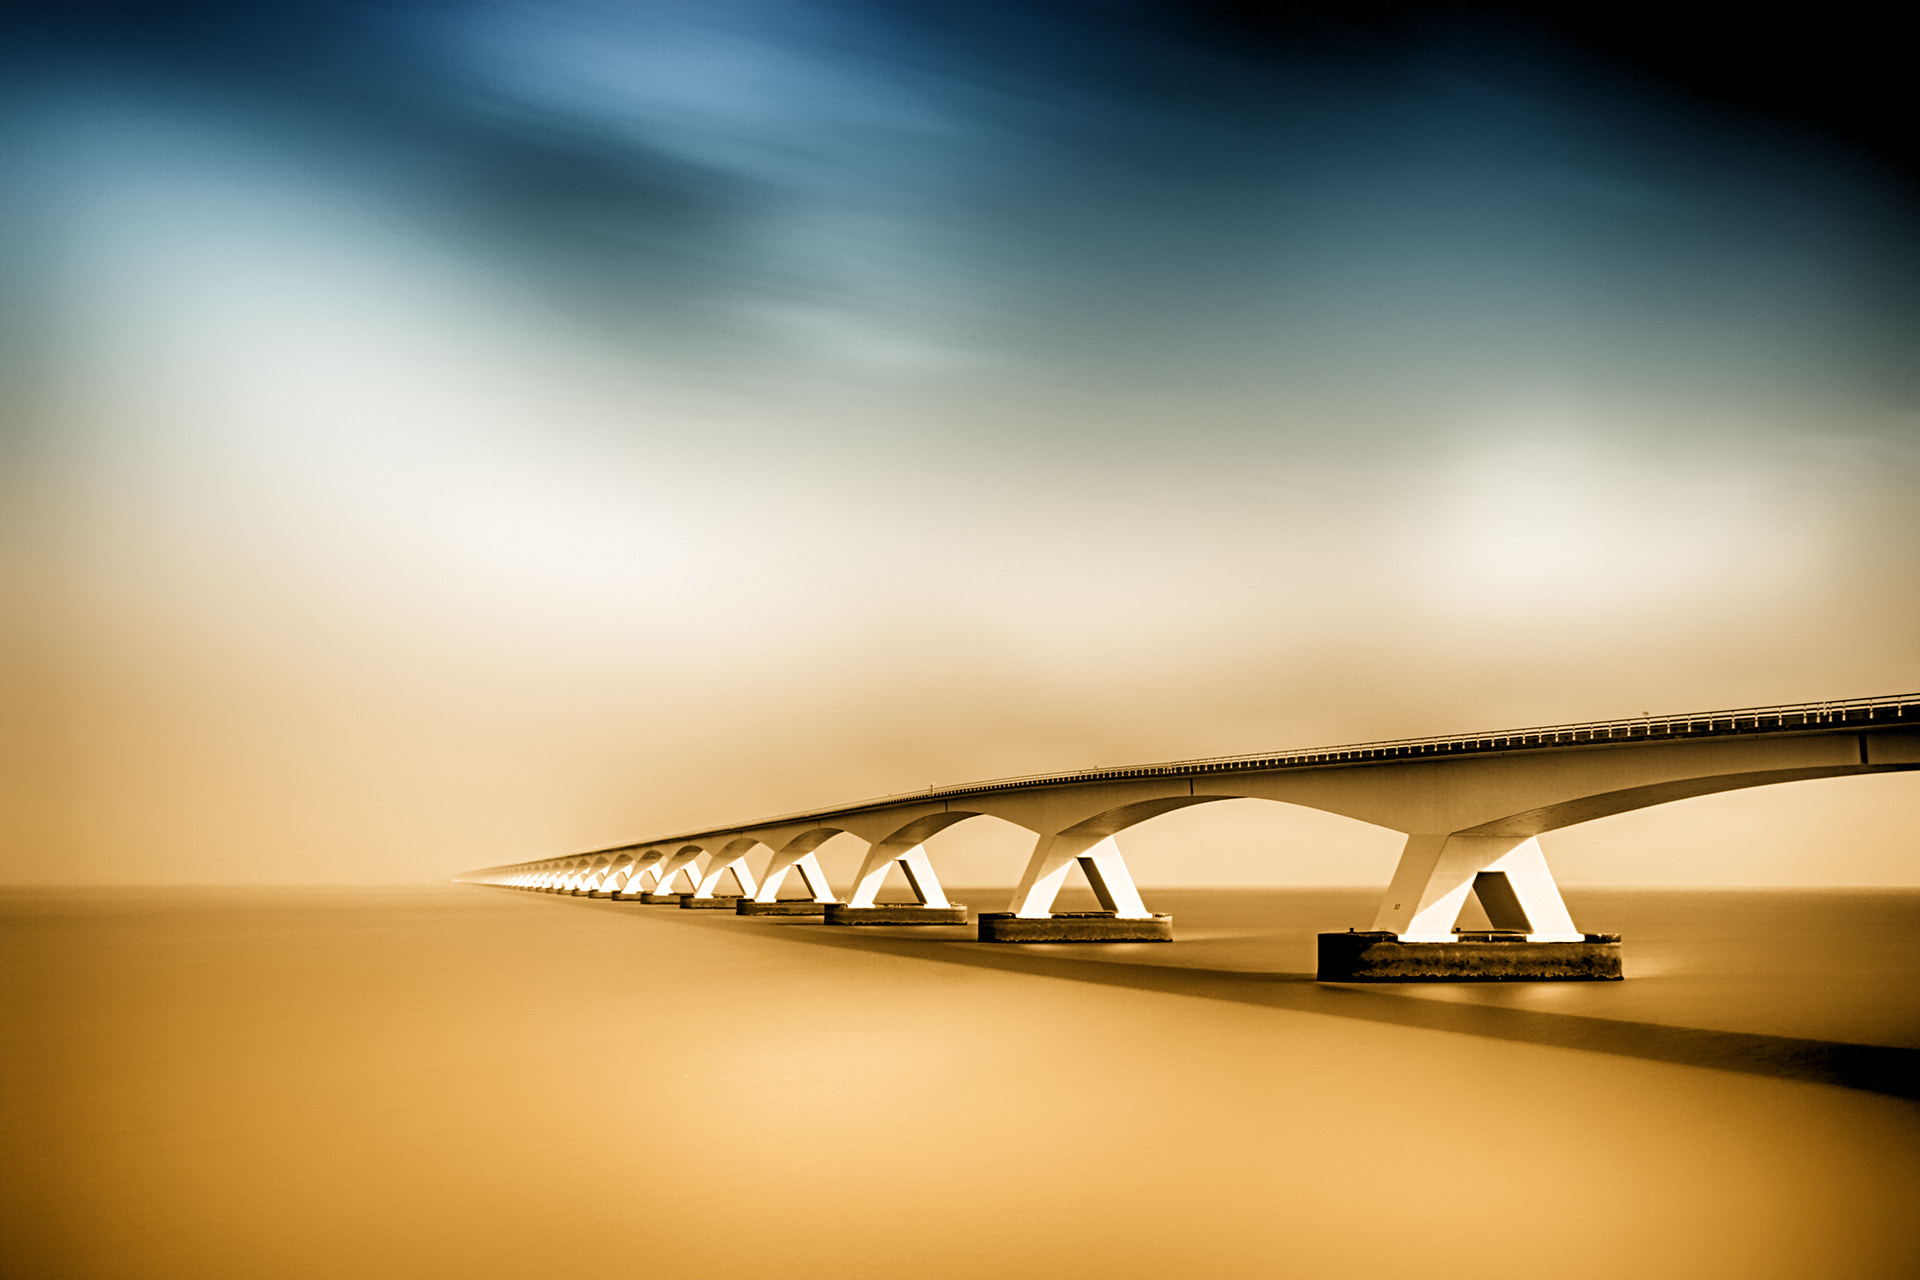 Photograph Journey to another world by Kees Smans on 500px